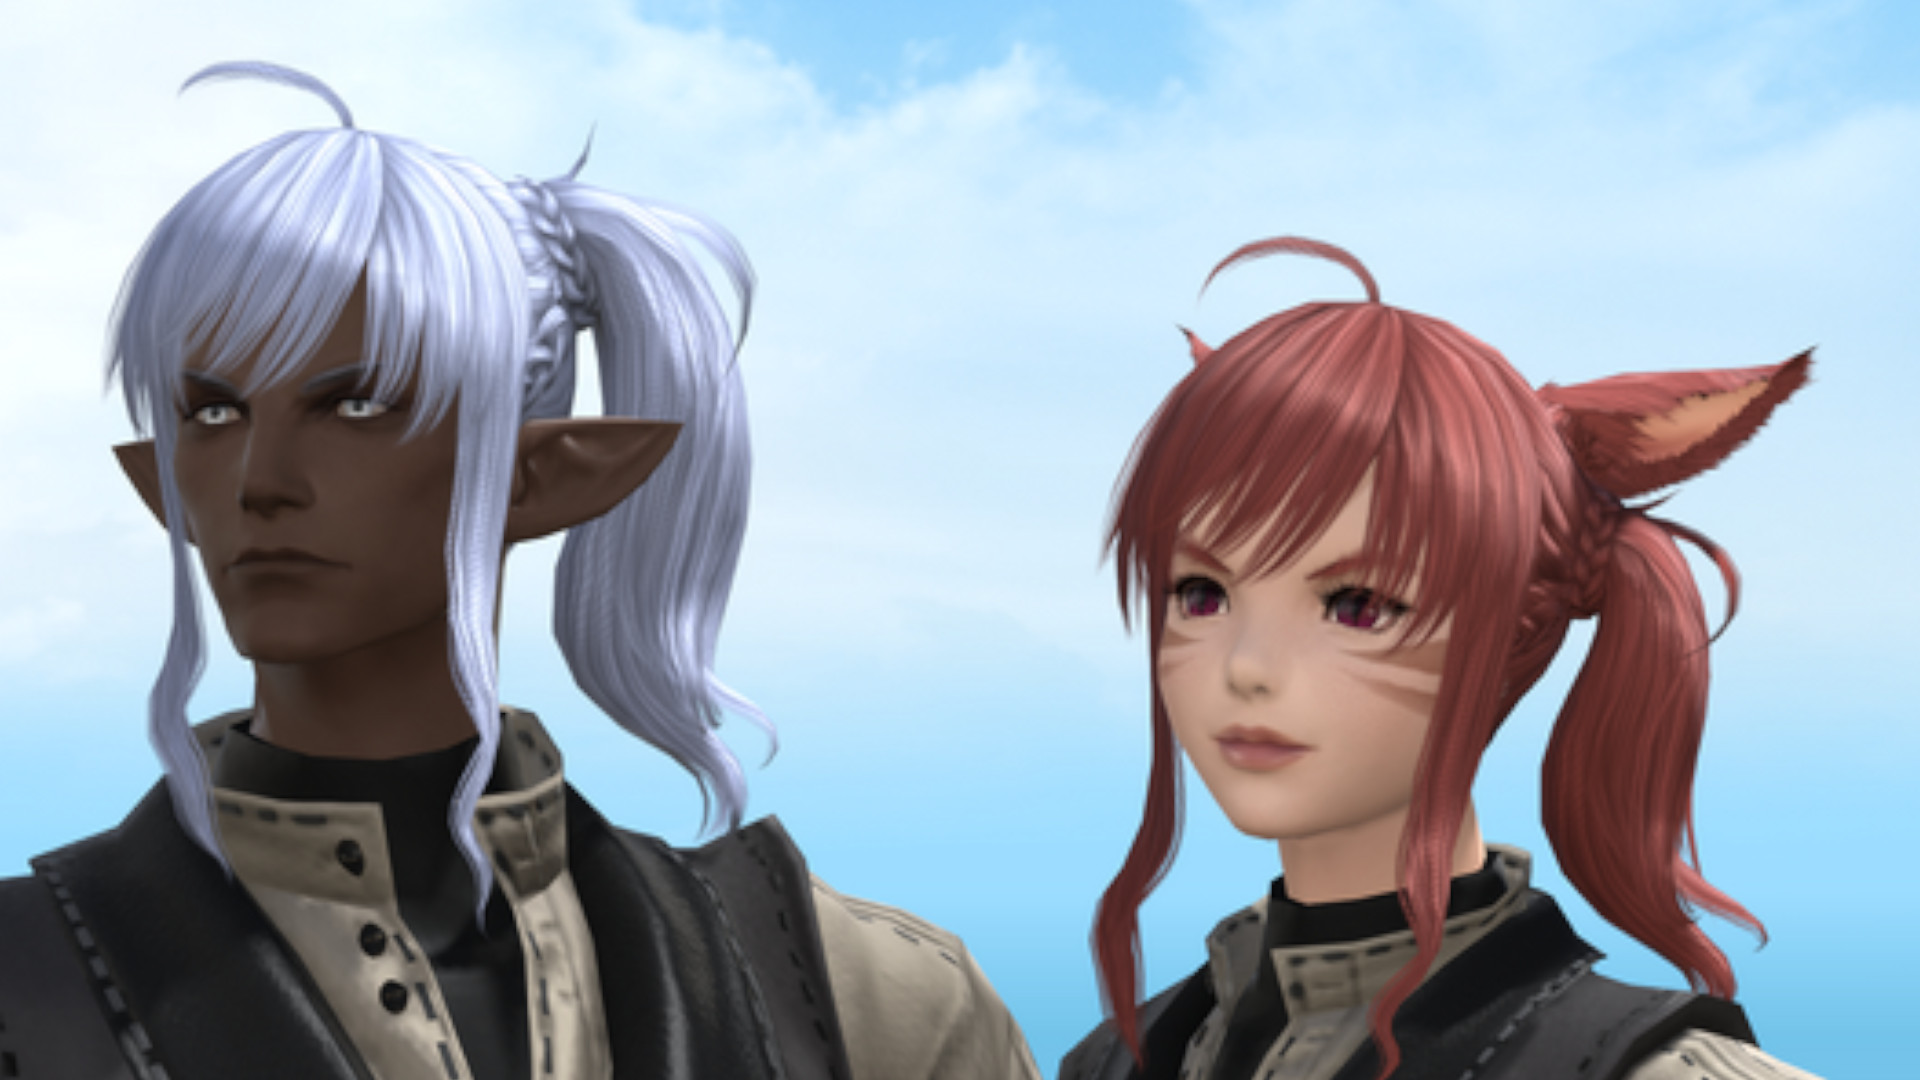 Final Fantasy XIV is still getting new hairstyles from a 2015 fan design contest